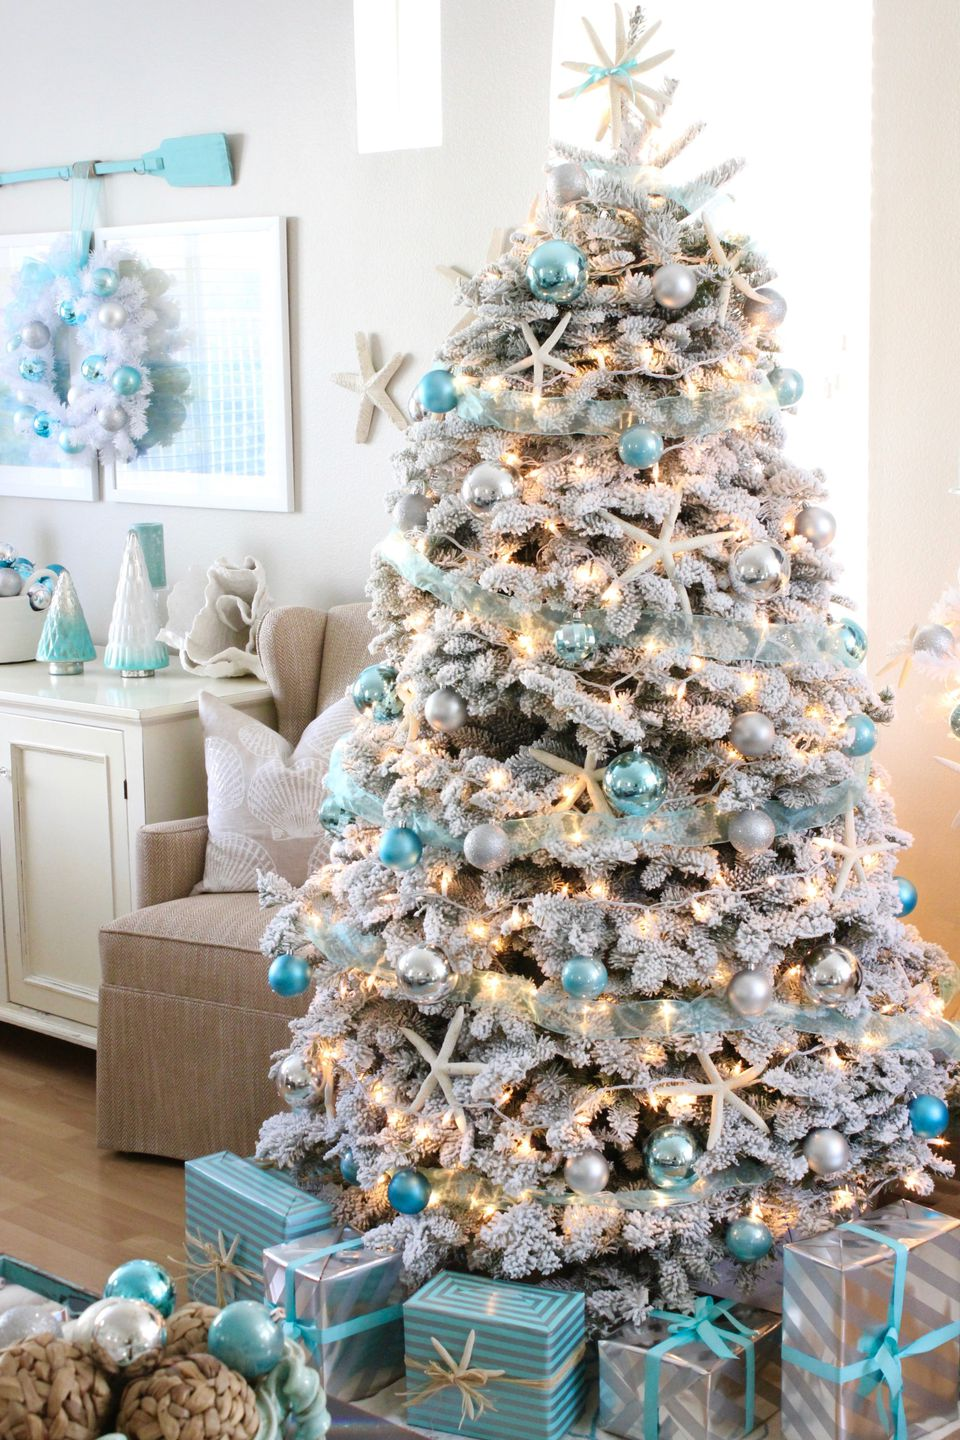 ocean inspired hues breezy designs - Beach Themed Christmas Trees